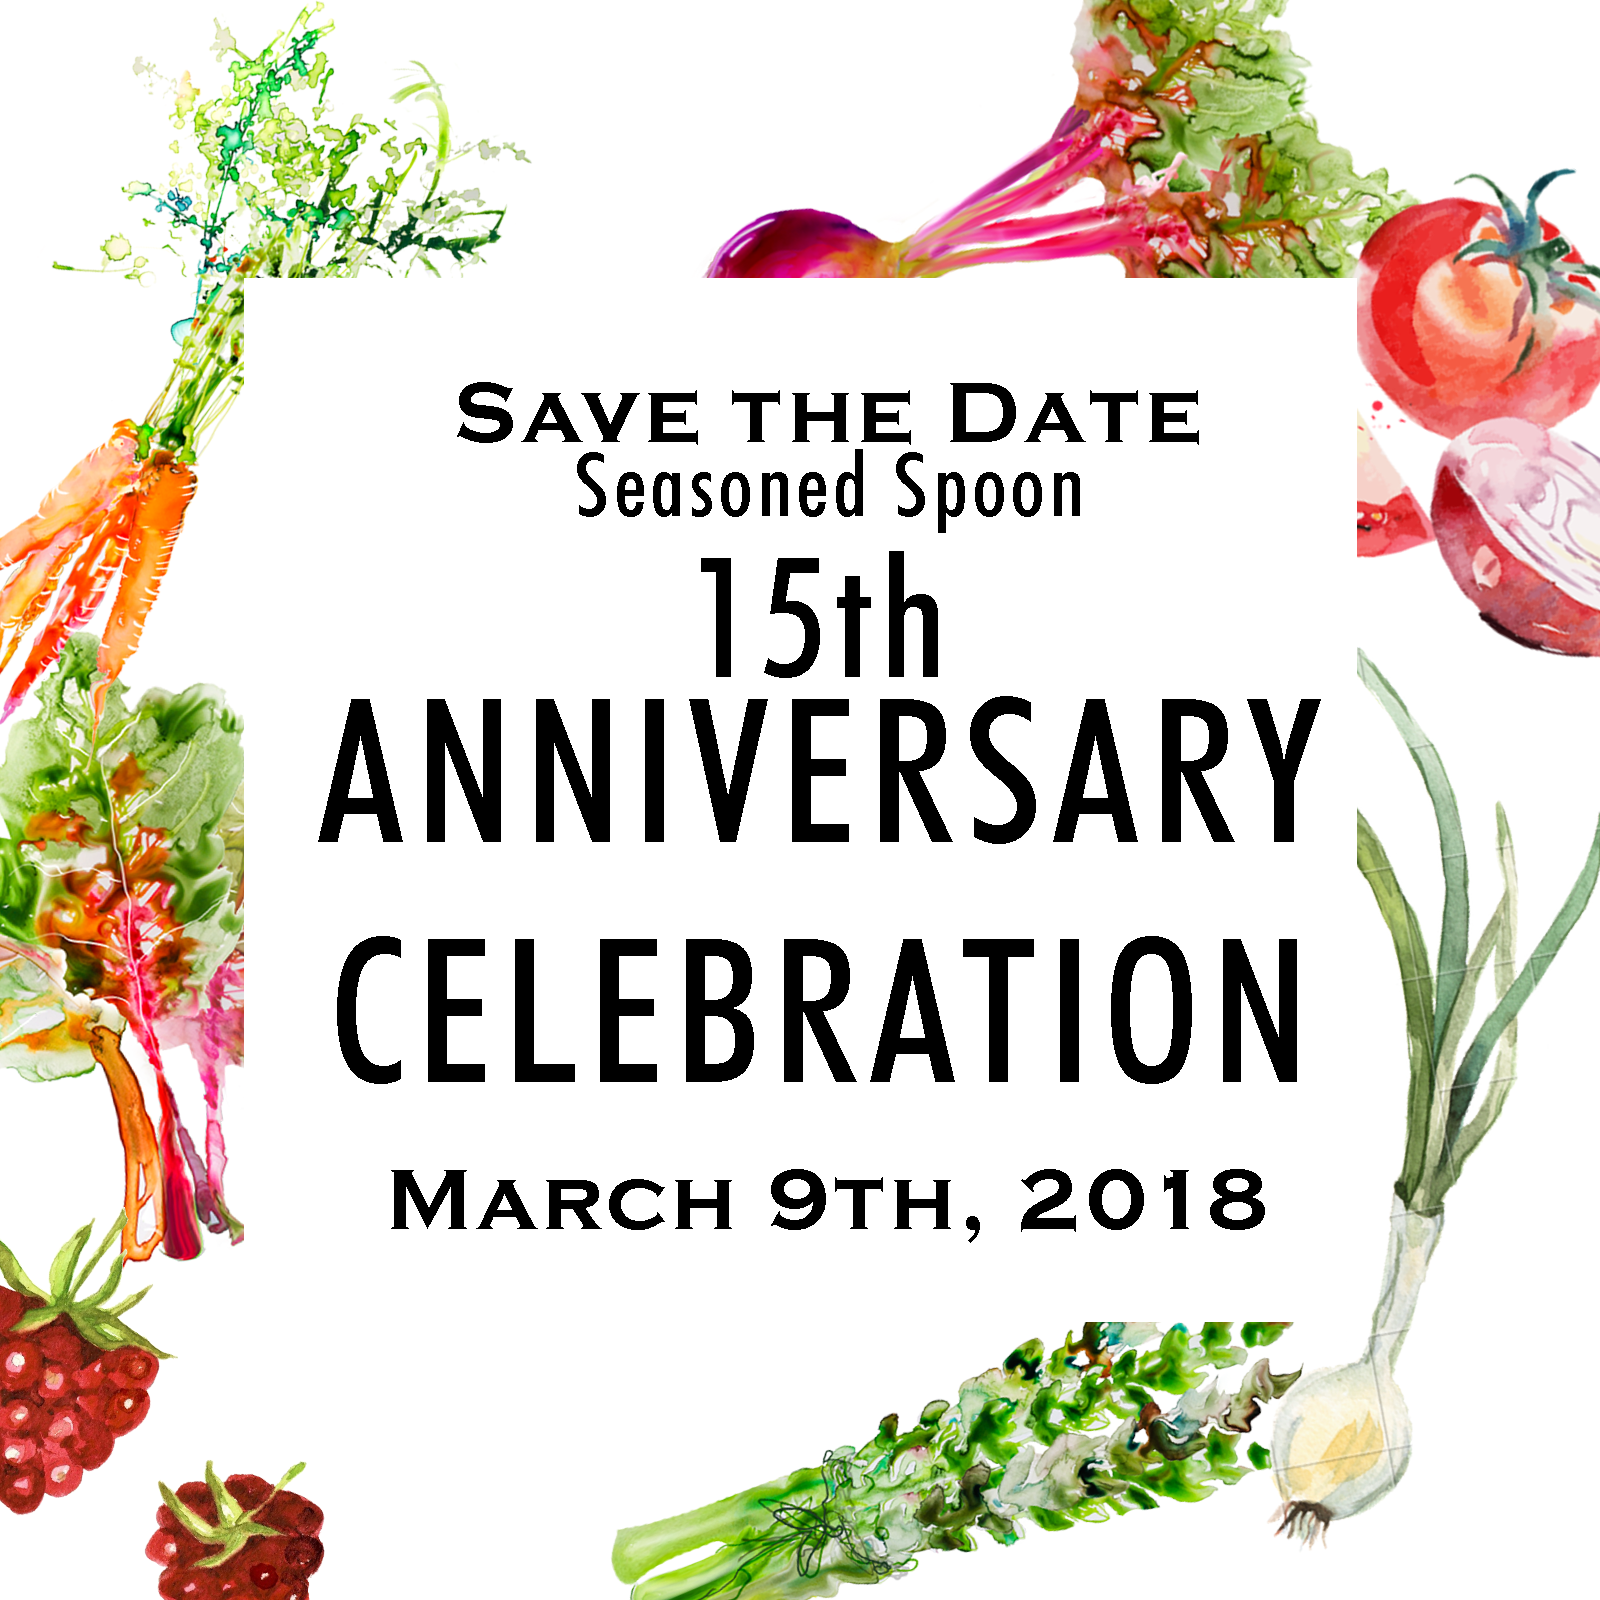 Seasoned Spoon 15th anniversary save the date in text surrounded by a border of various vegetables